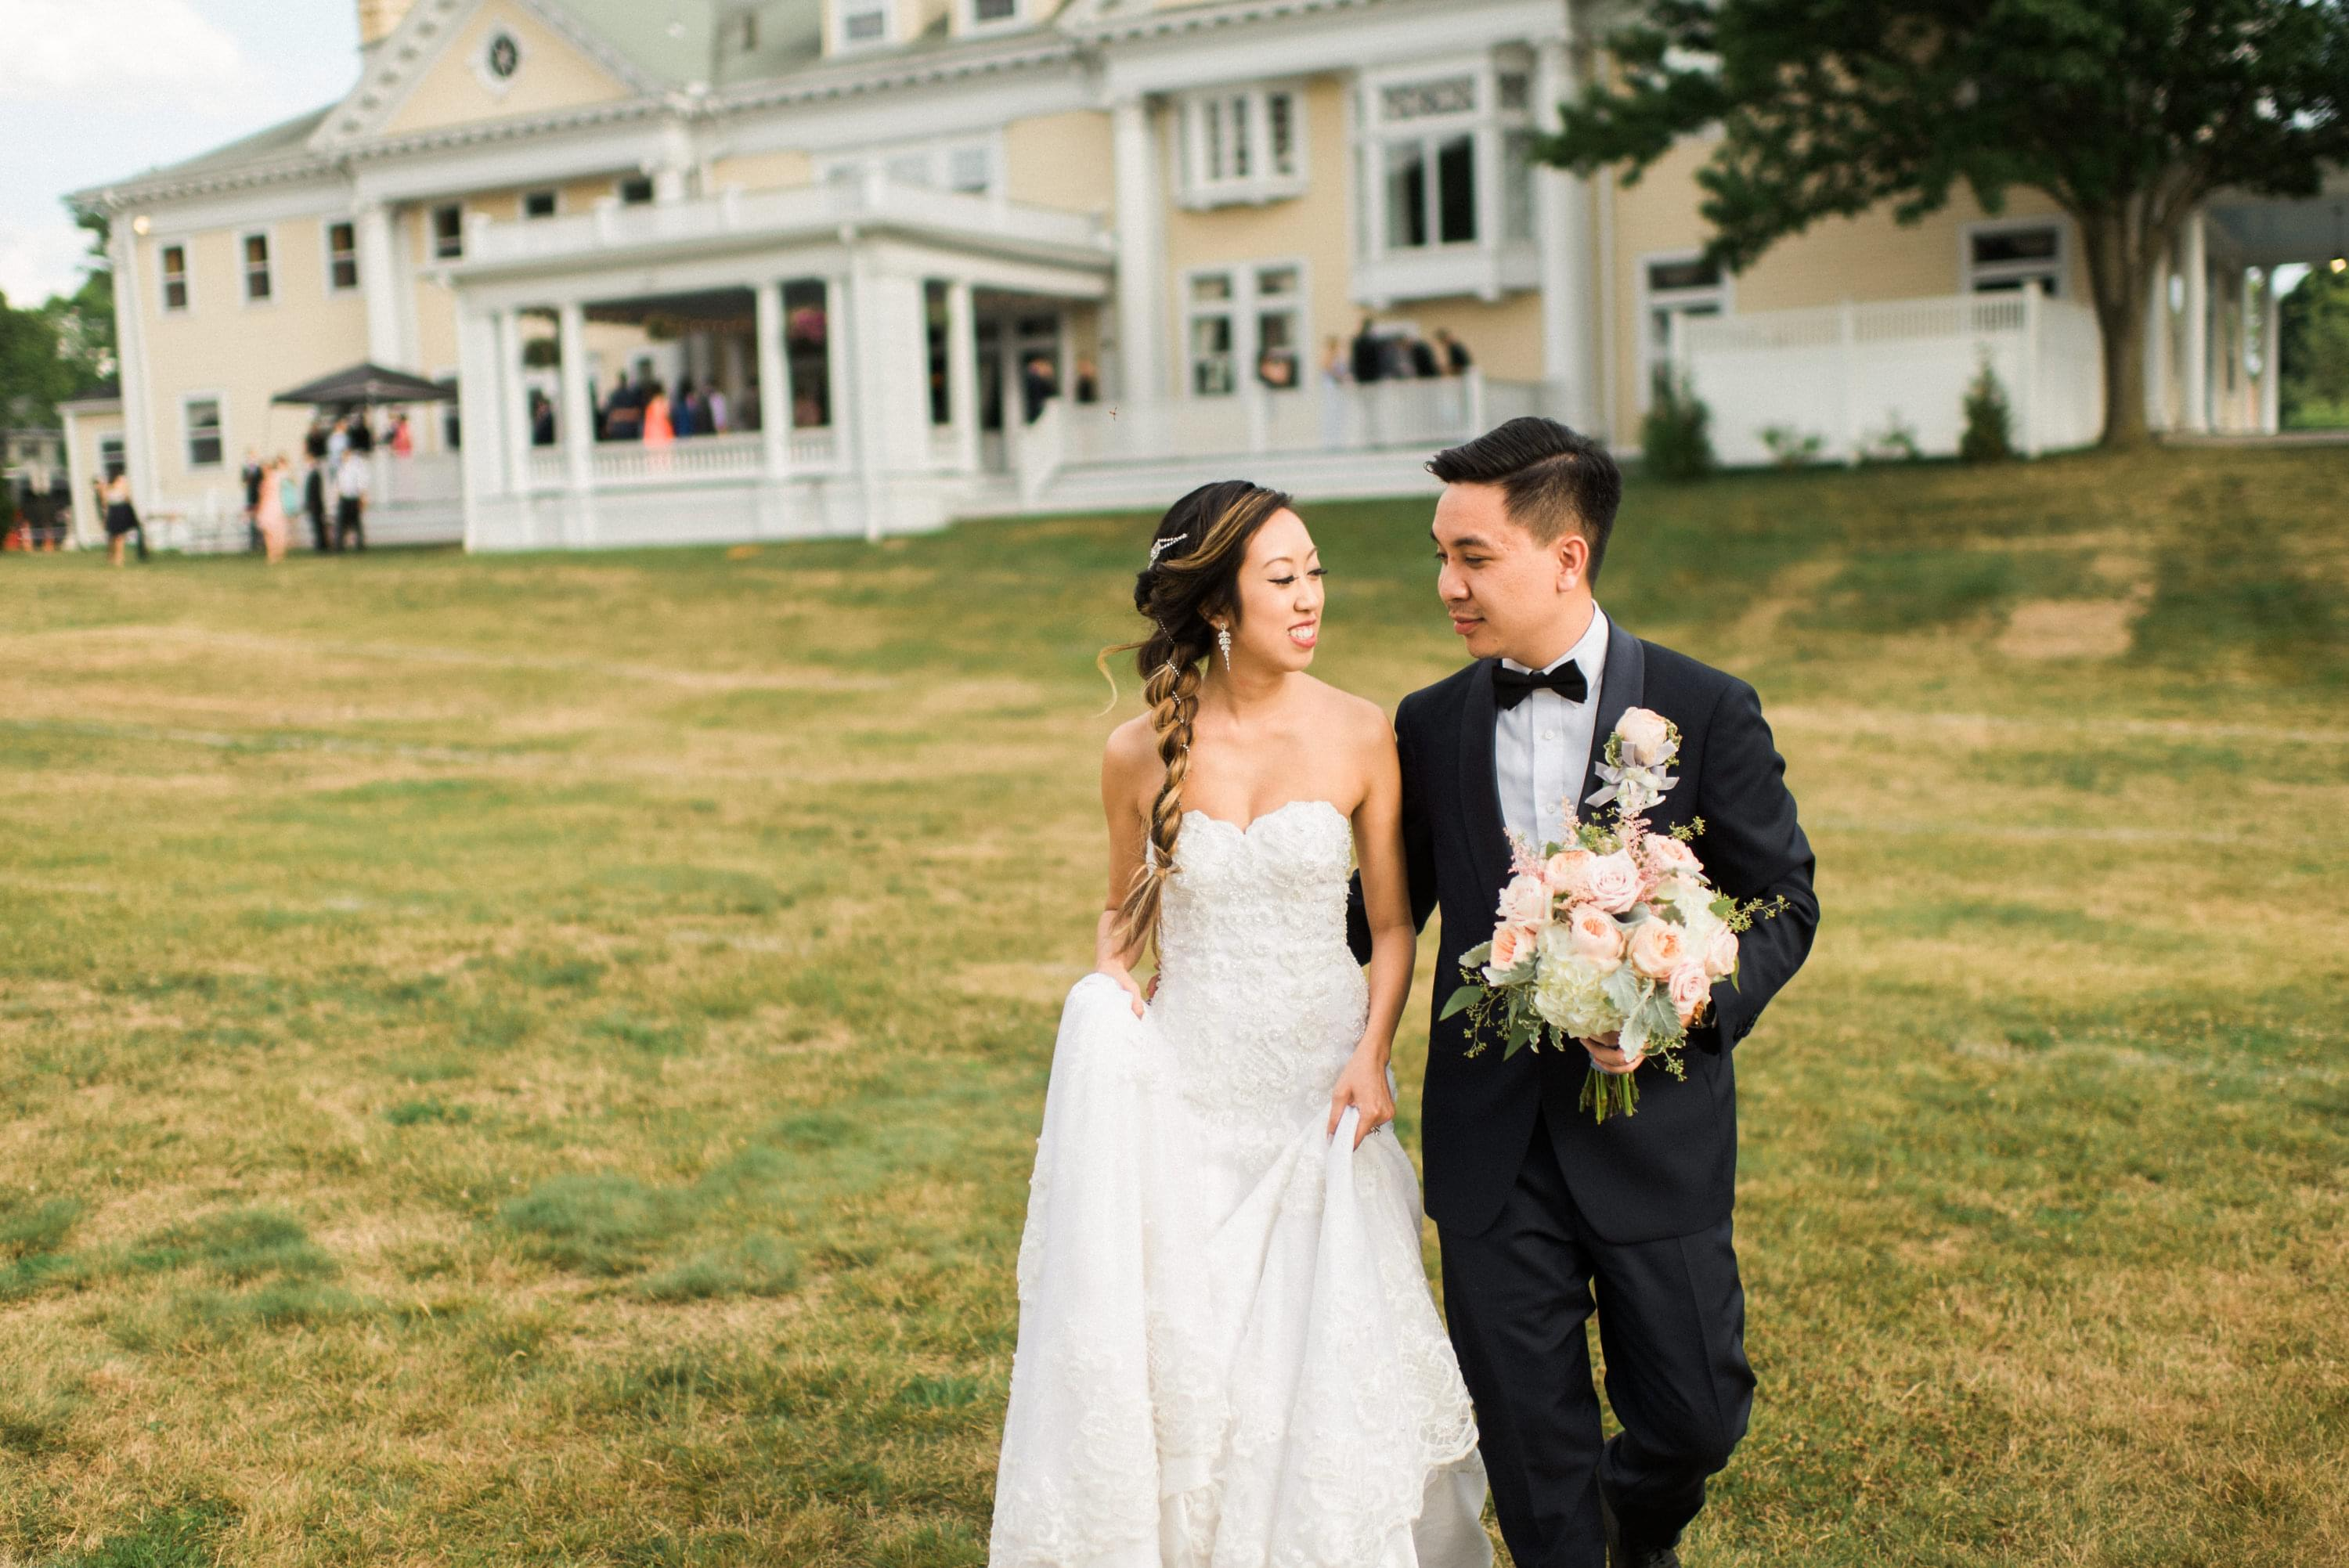 Endicott Estate wedding